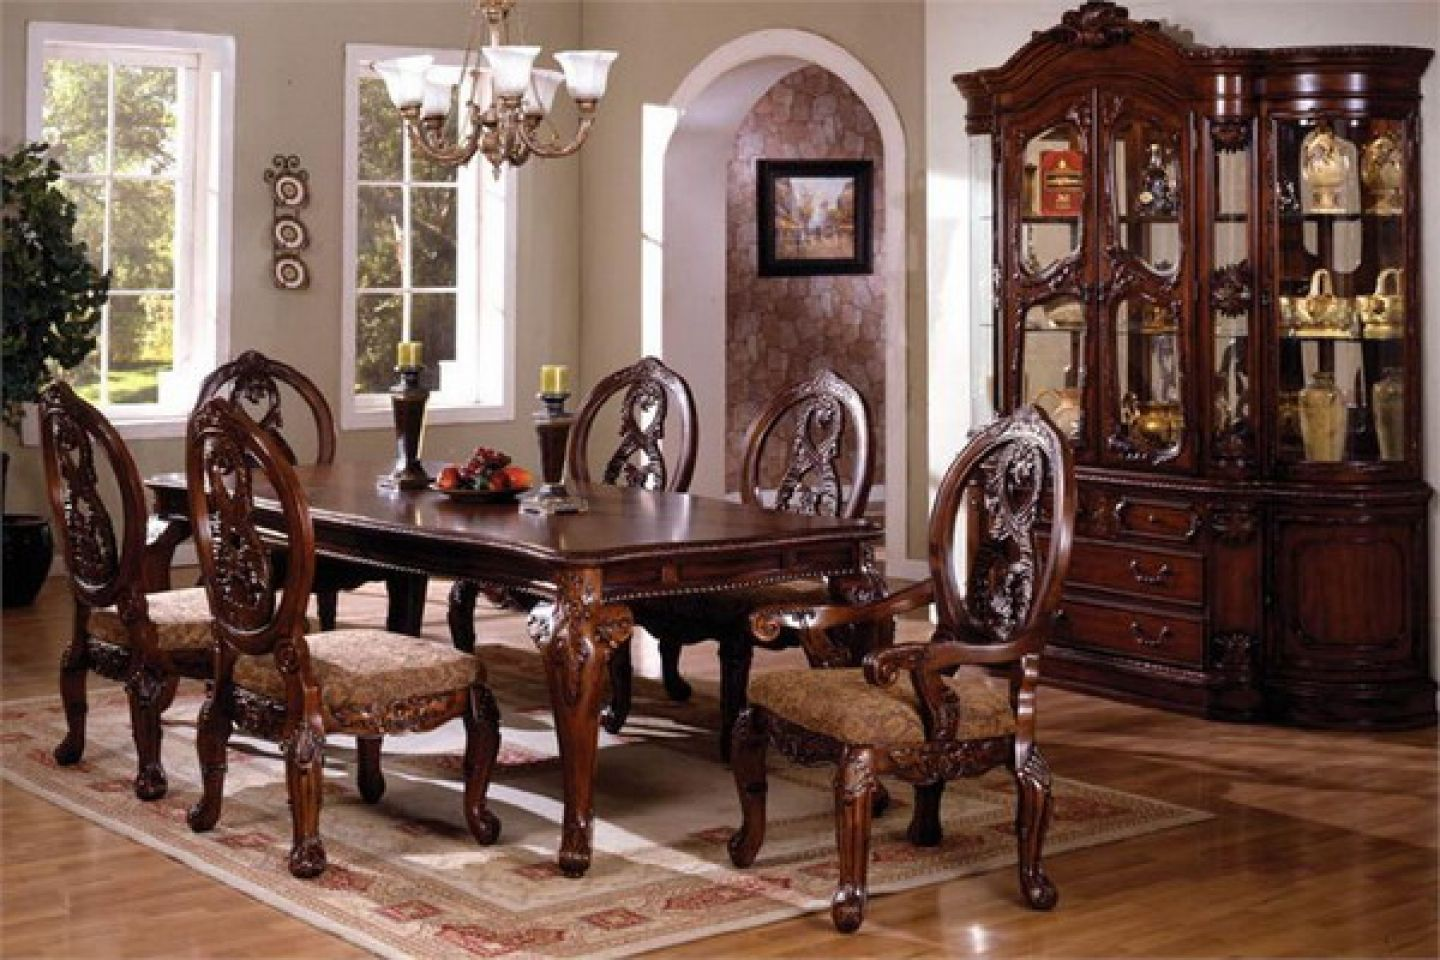 small elegant dining room tables | 2017 formal dining room furniture for elegant, functional ...